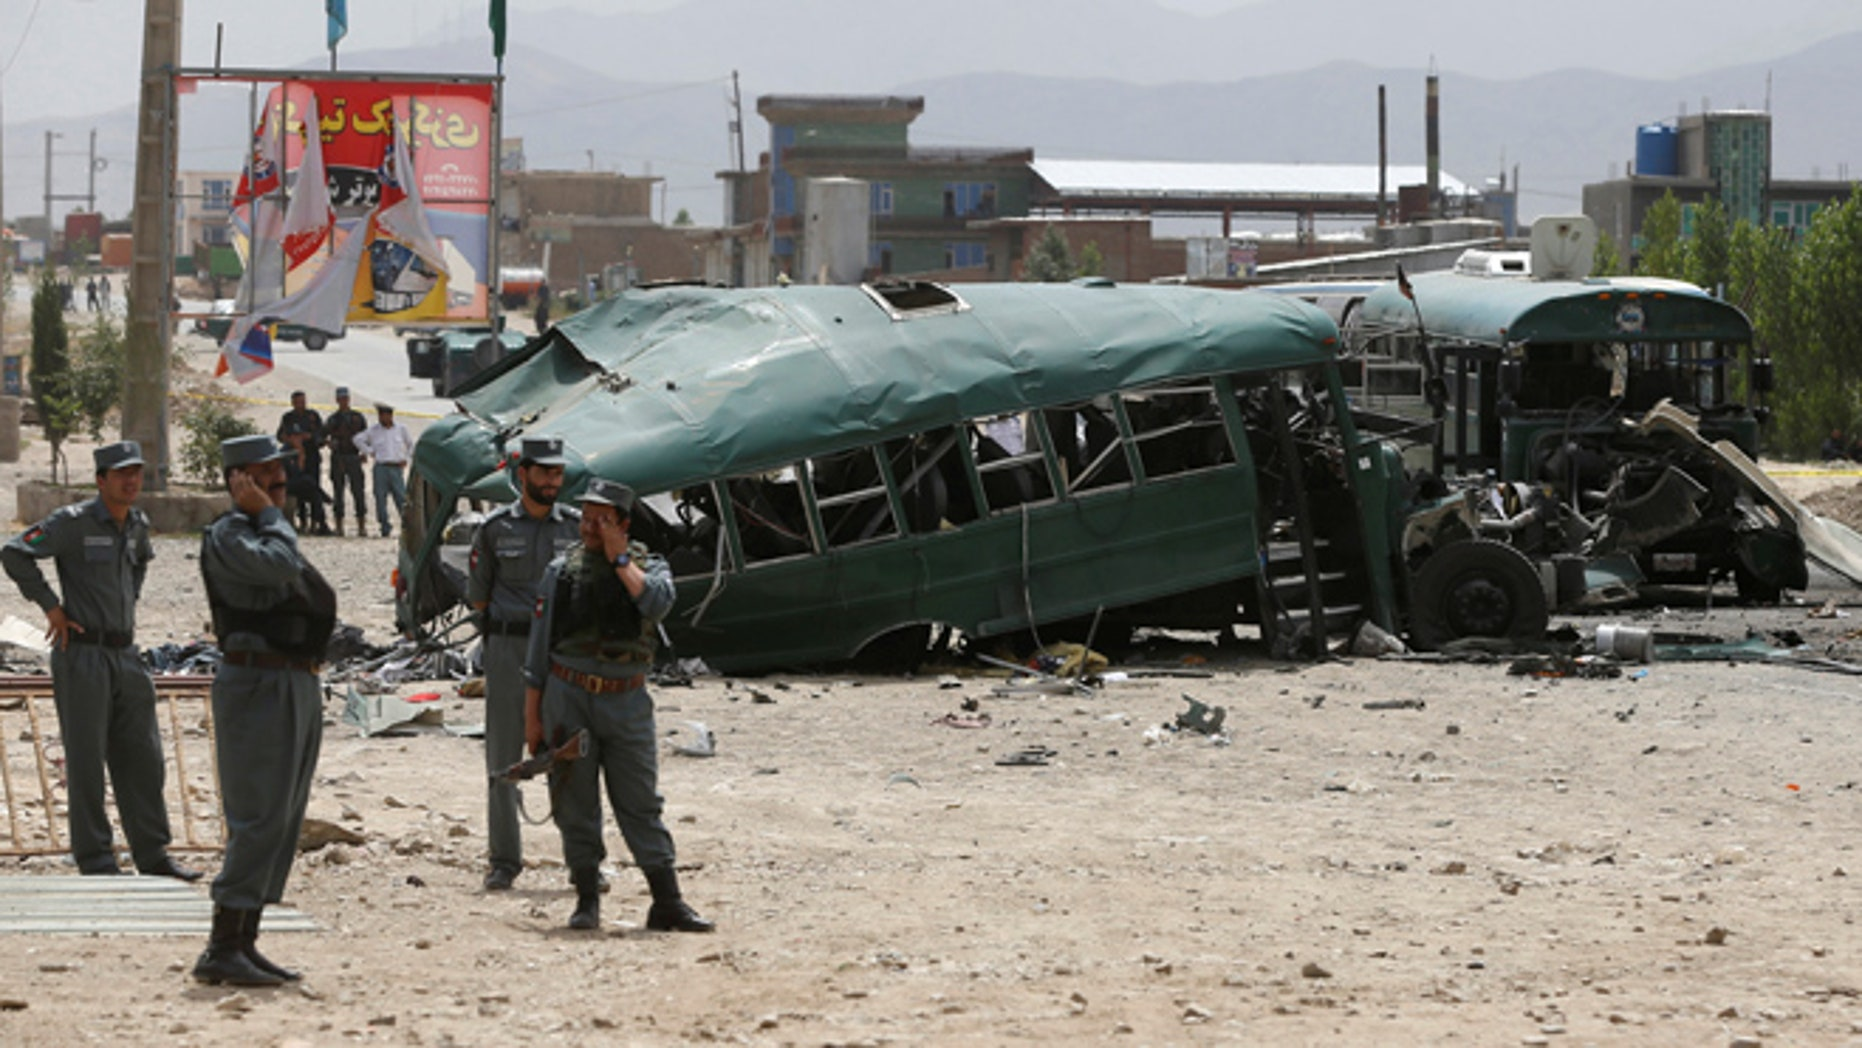 Afghan security forces inspect the damage on a bus that was hit by suicide bombers at the site of an attack on the western outskirts of Kabul, Afghanistan June 30, 2016. REUTERS/Omar Sobhani